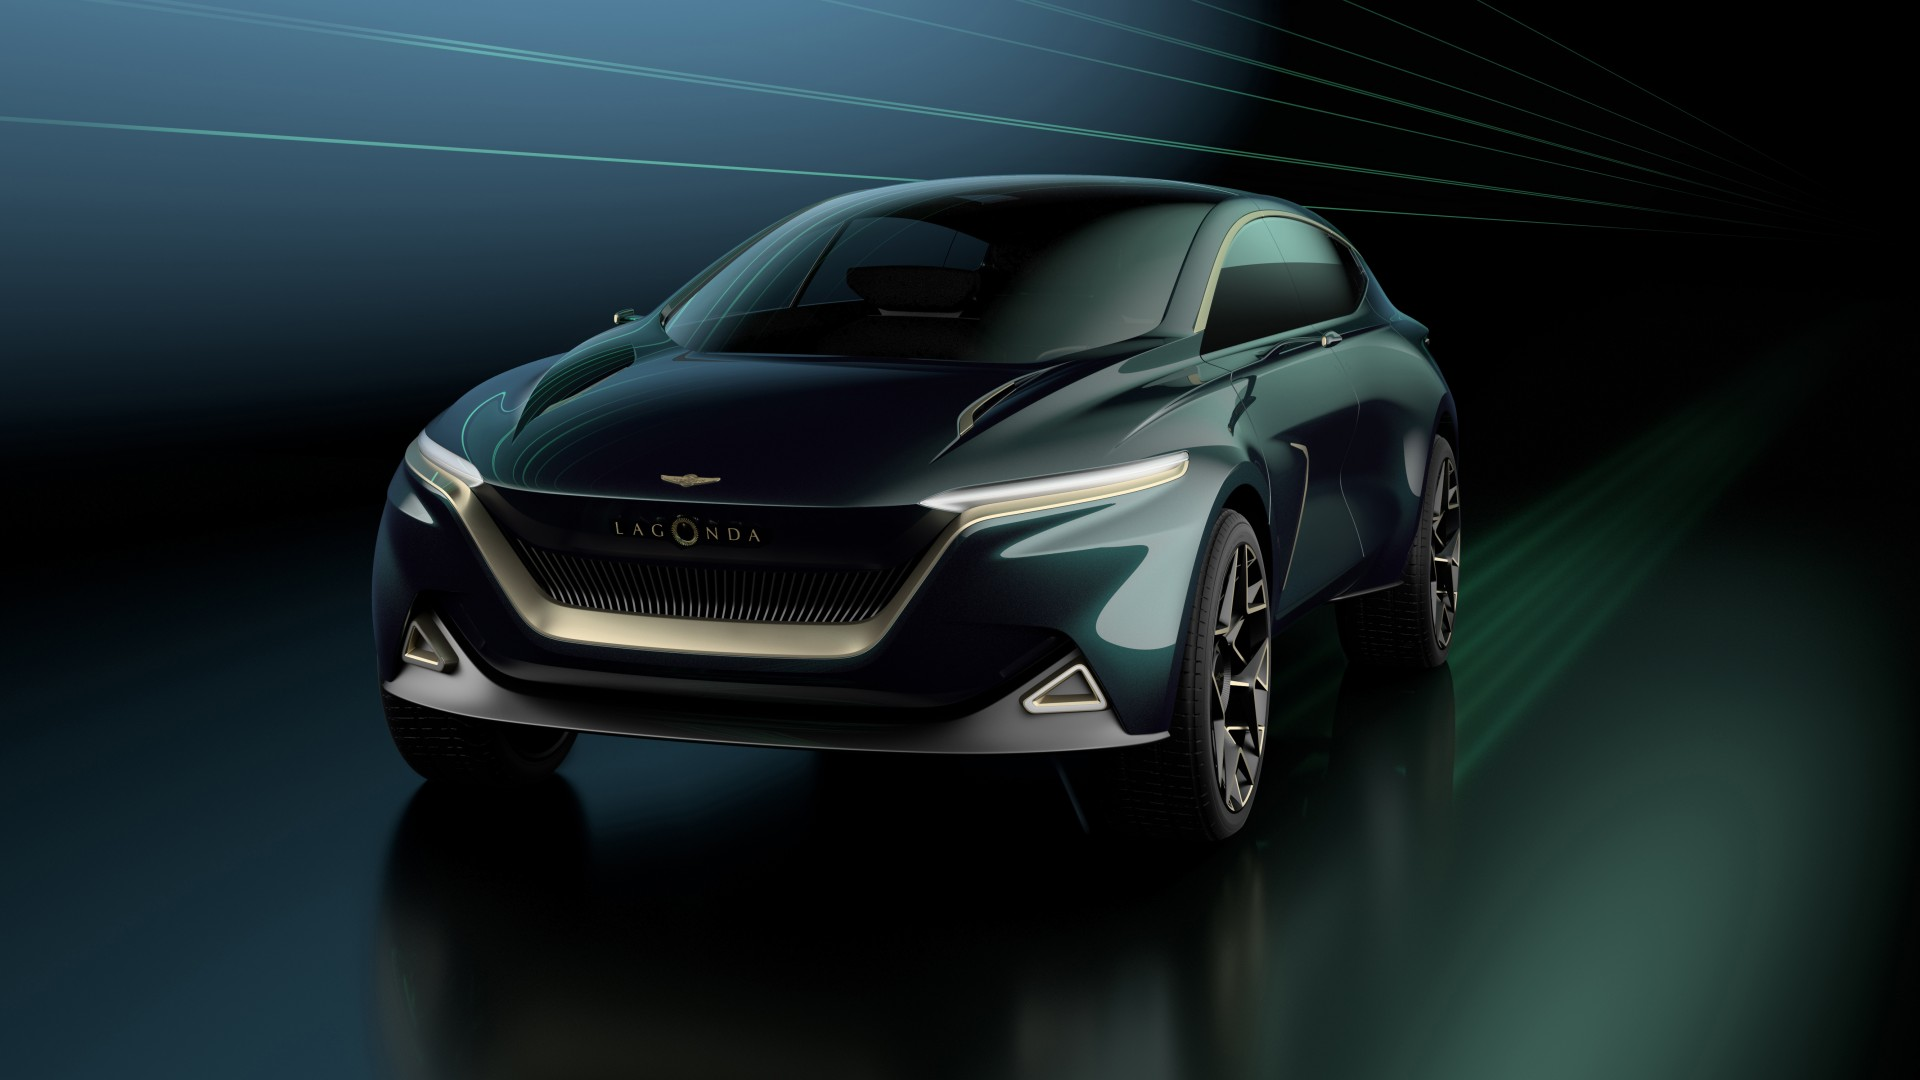 Lagonda All Terrain Concept 2019 4k Wallpaper Hd Car